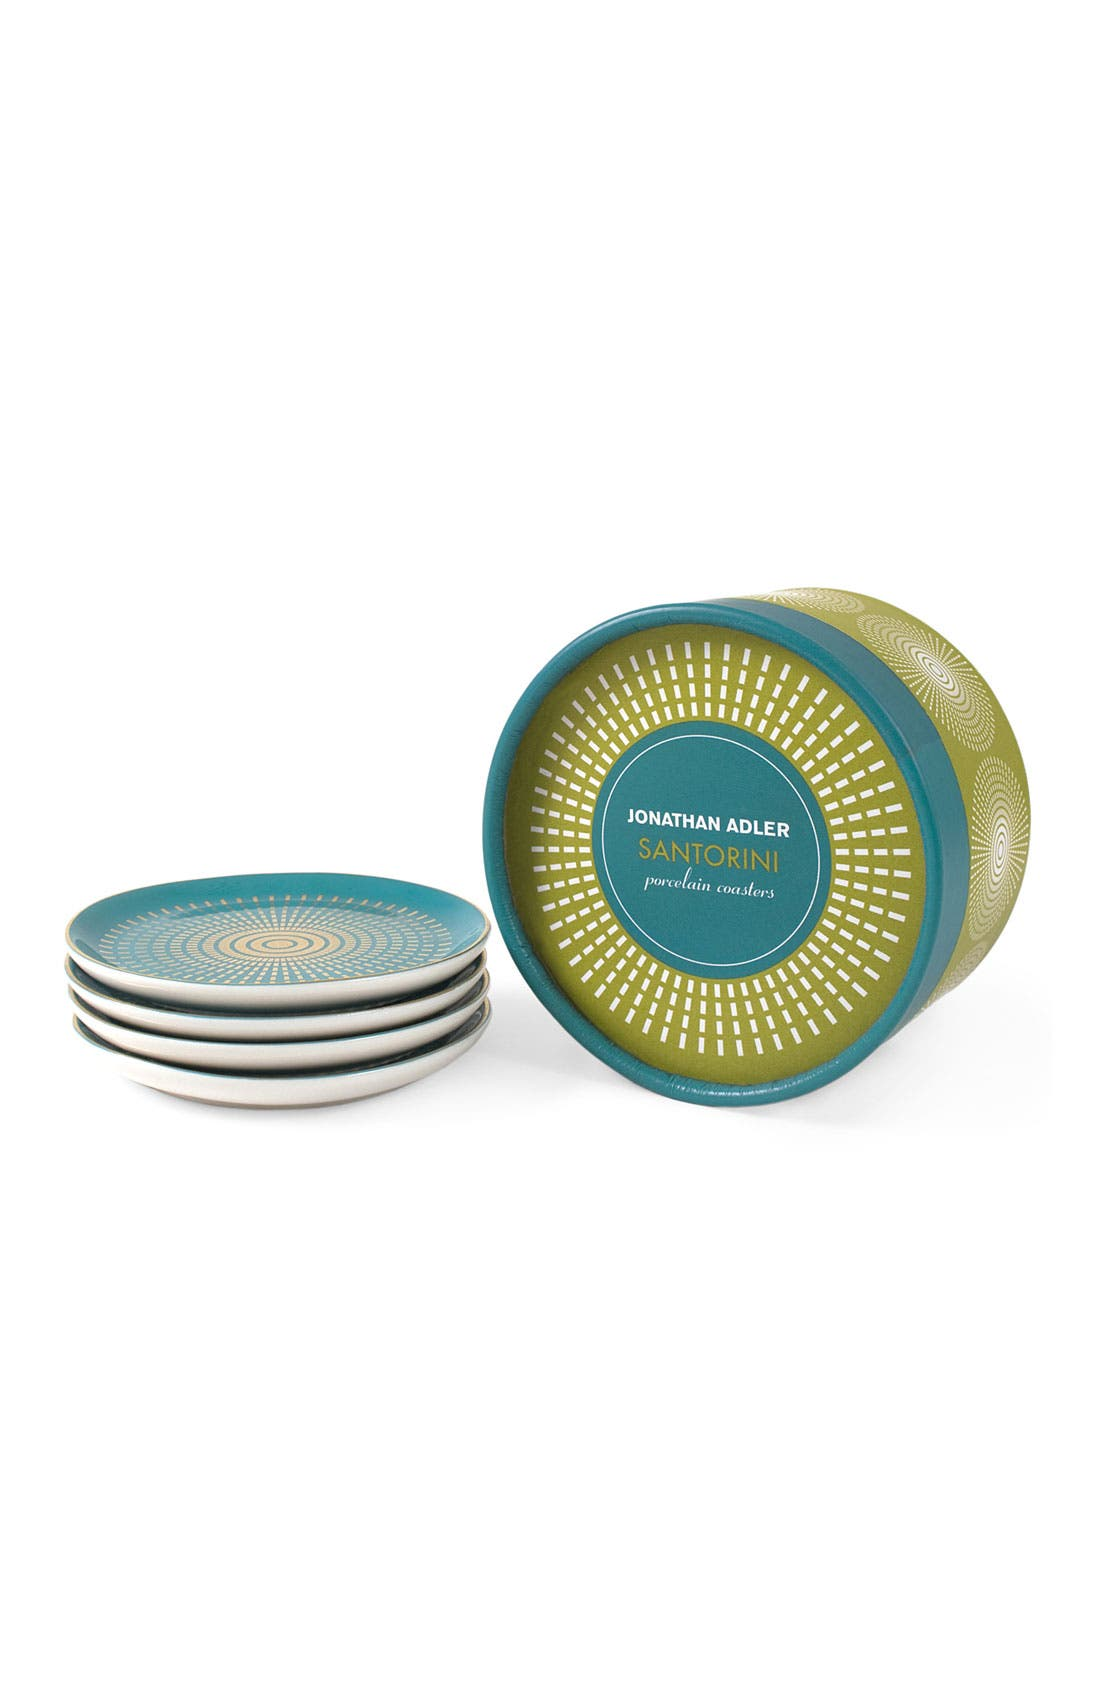 Alternate Image 1 Selected - Jonathan Adler 'Santorini' Porcelain Coasters (Set of 4)